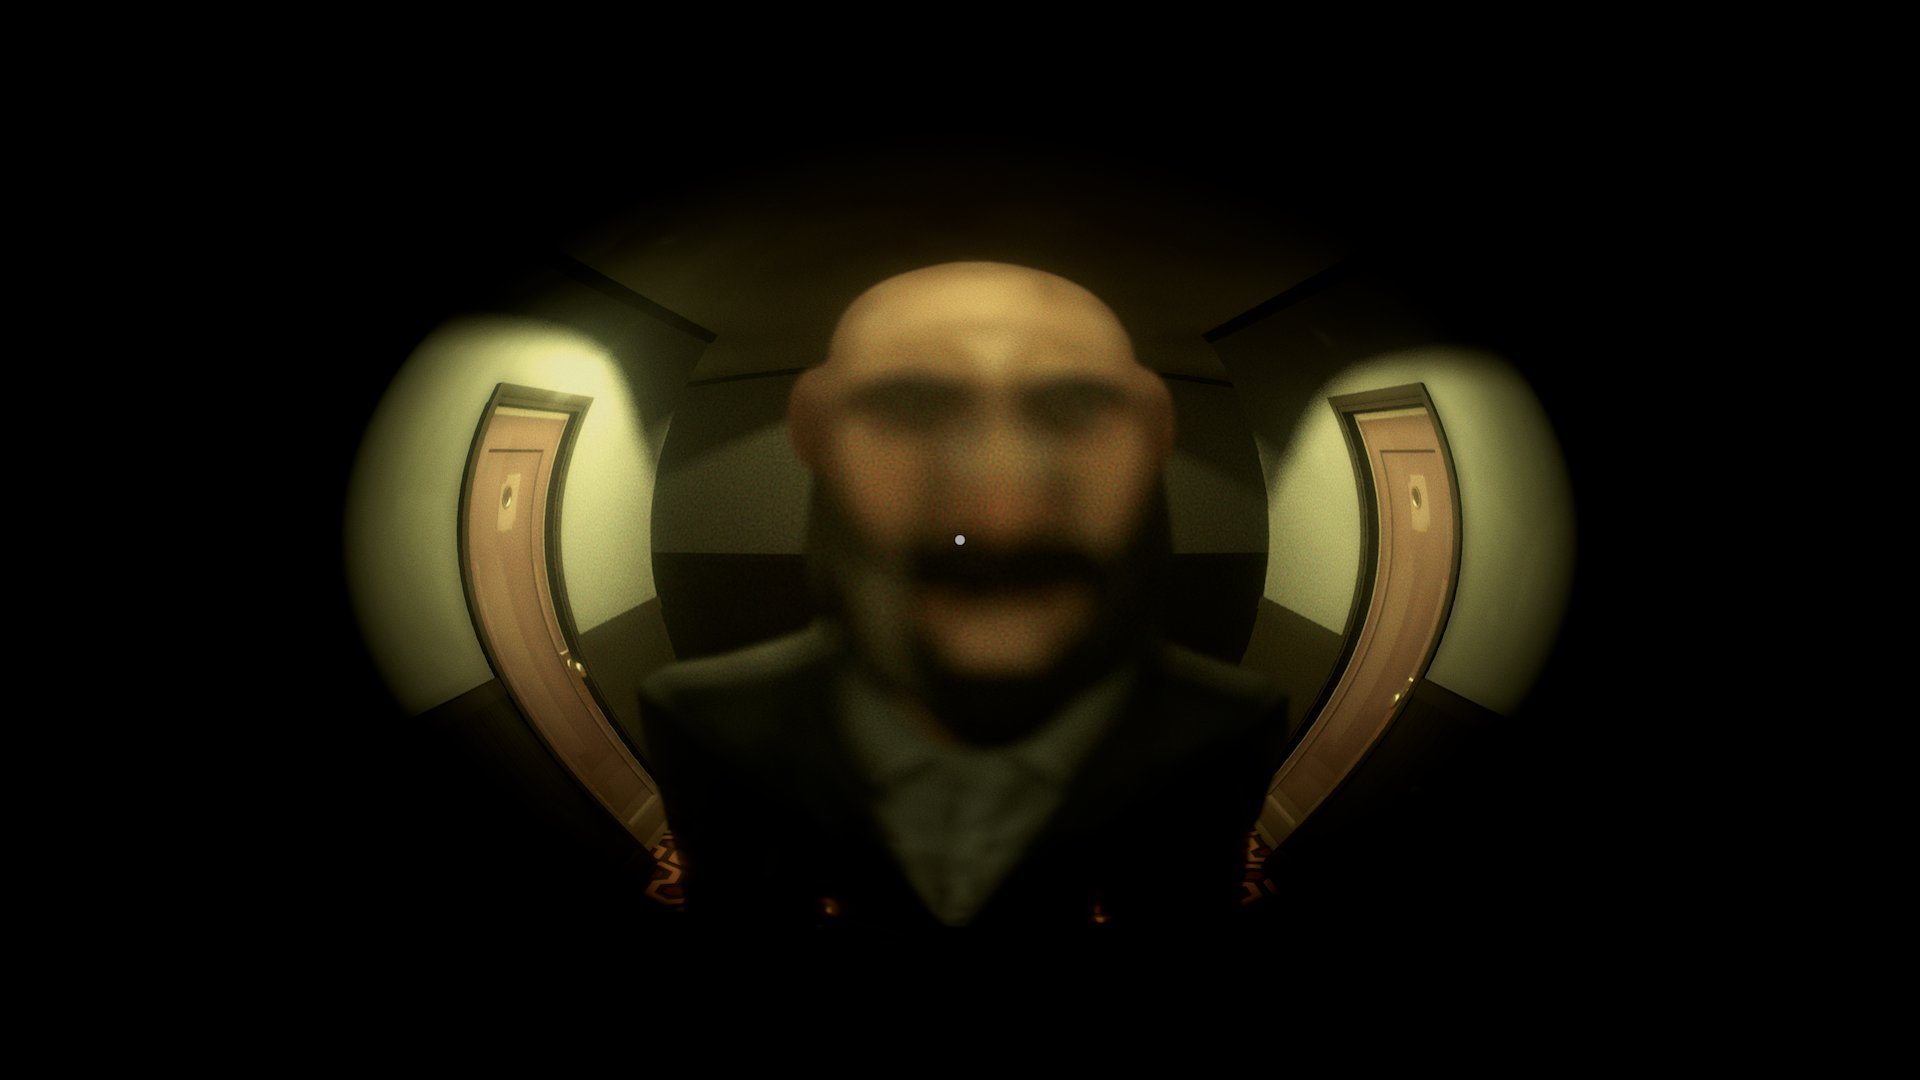 A screenshot from 12 Minutes, you're looking through the spy-hole of your apartment door at a man's blurry face.